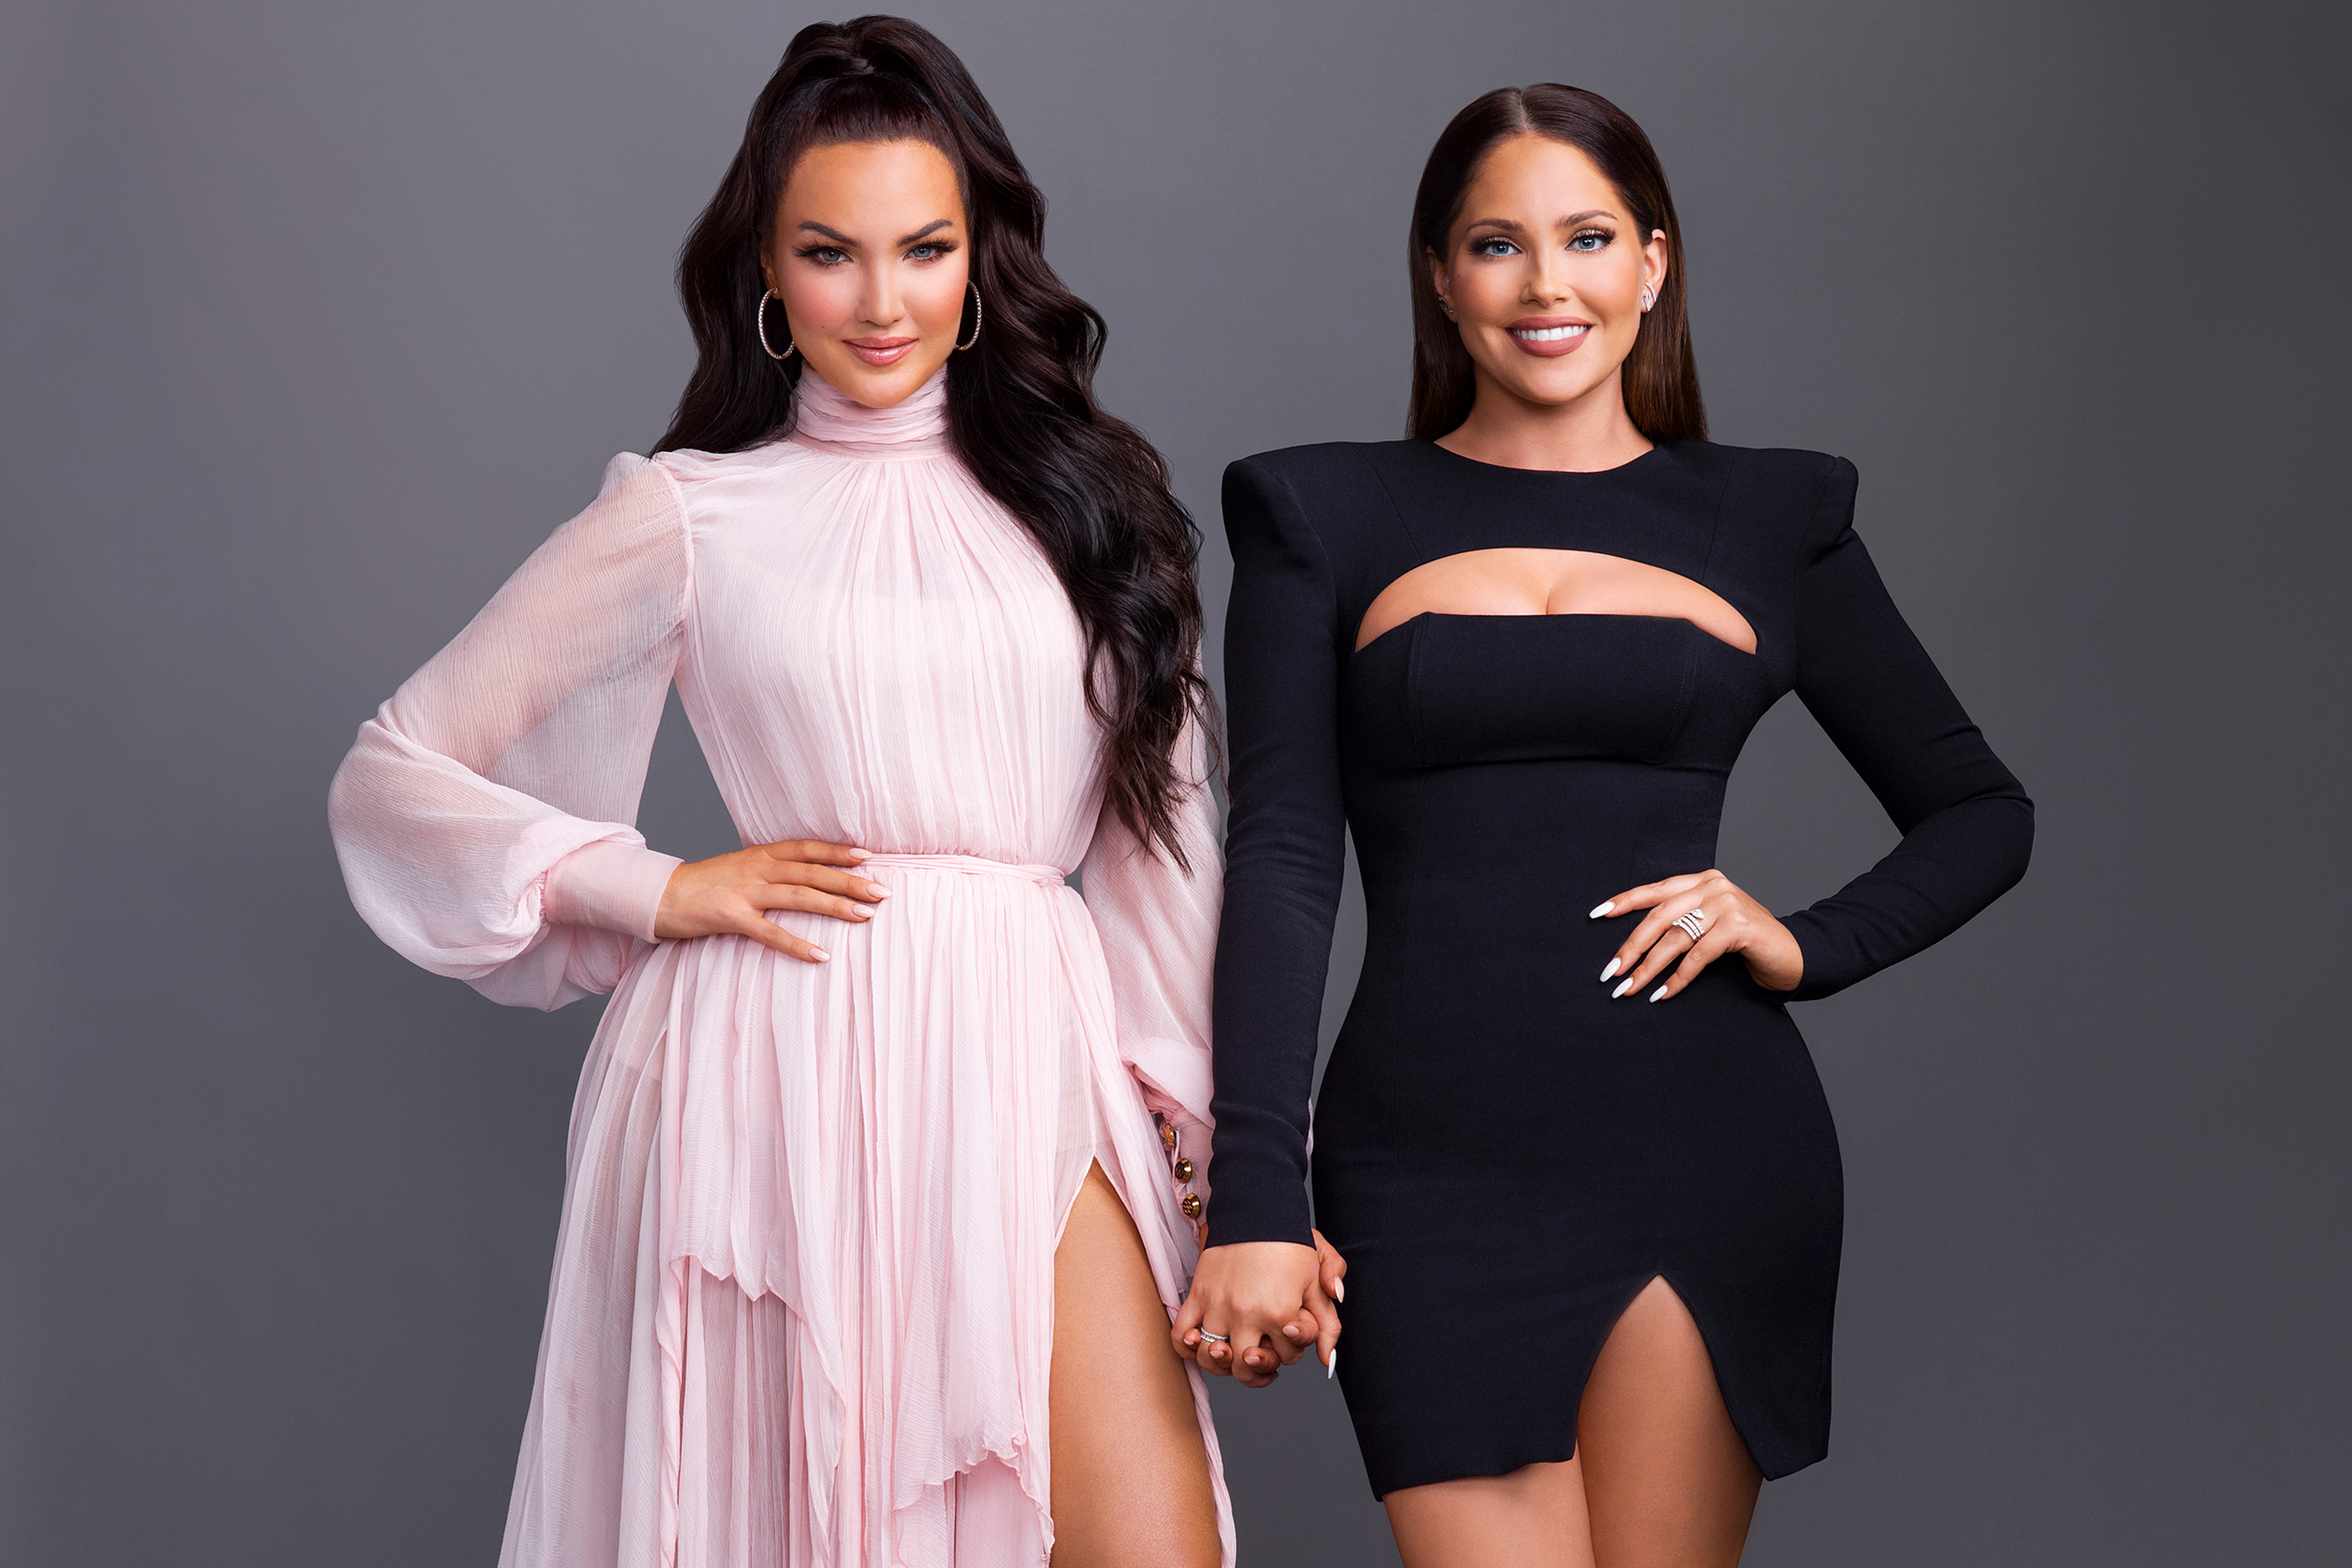 Natalie Halcro and Olivia Pierson Style Rave